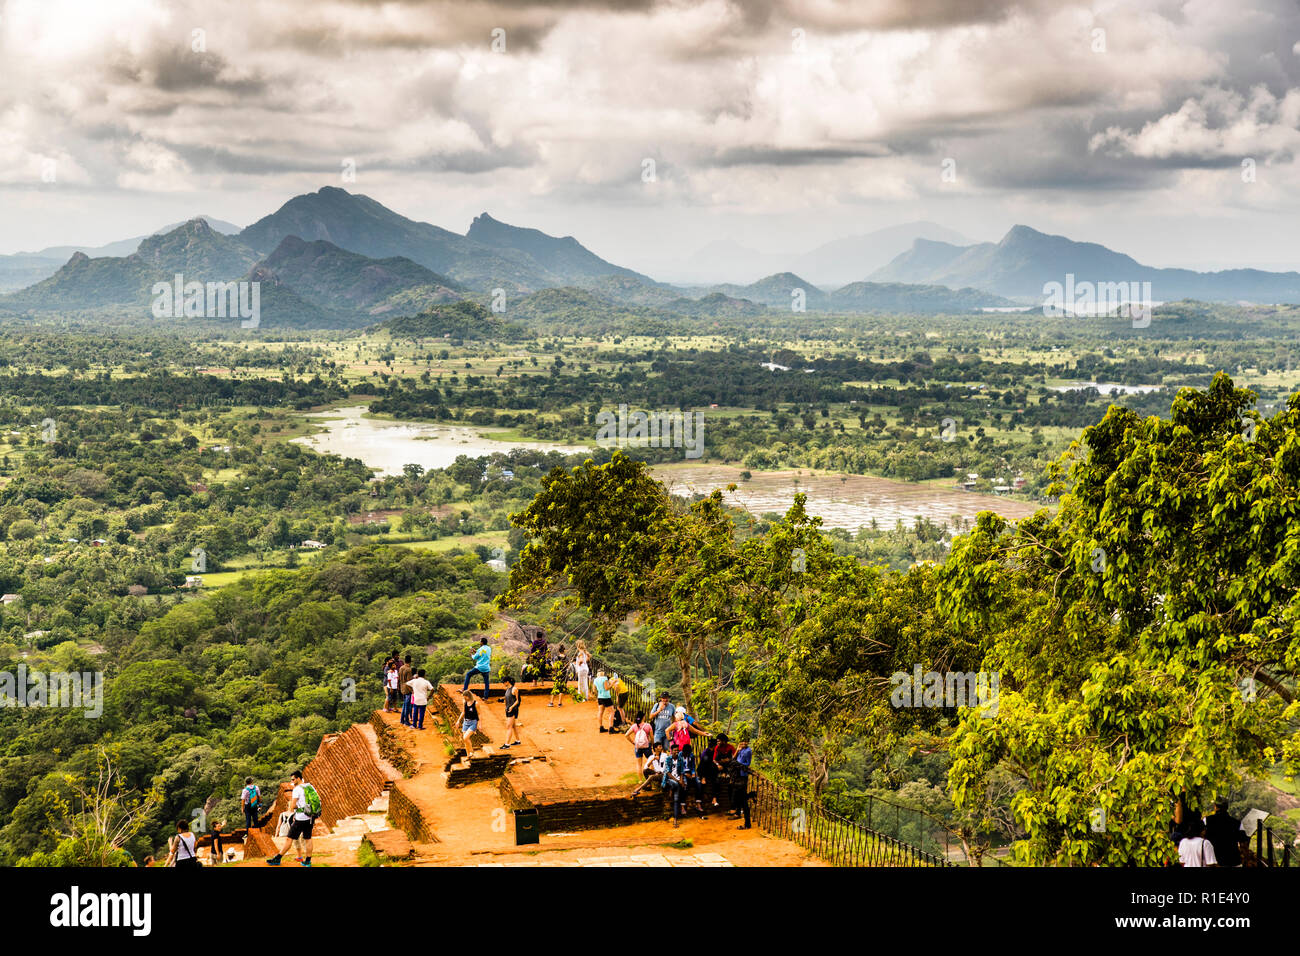 Breathtaking view from the Sigiriya rock fortress over rice fields and mountain ranges in the distance Stock Photo